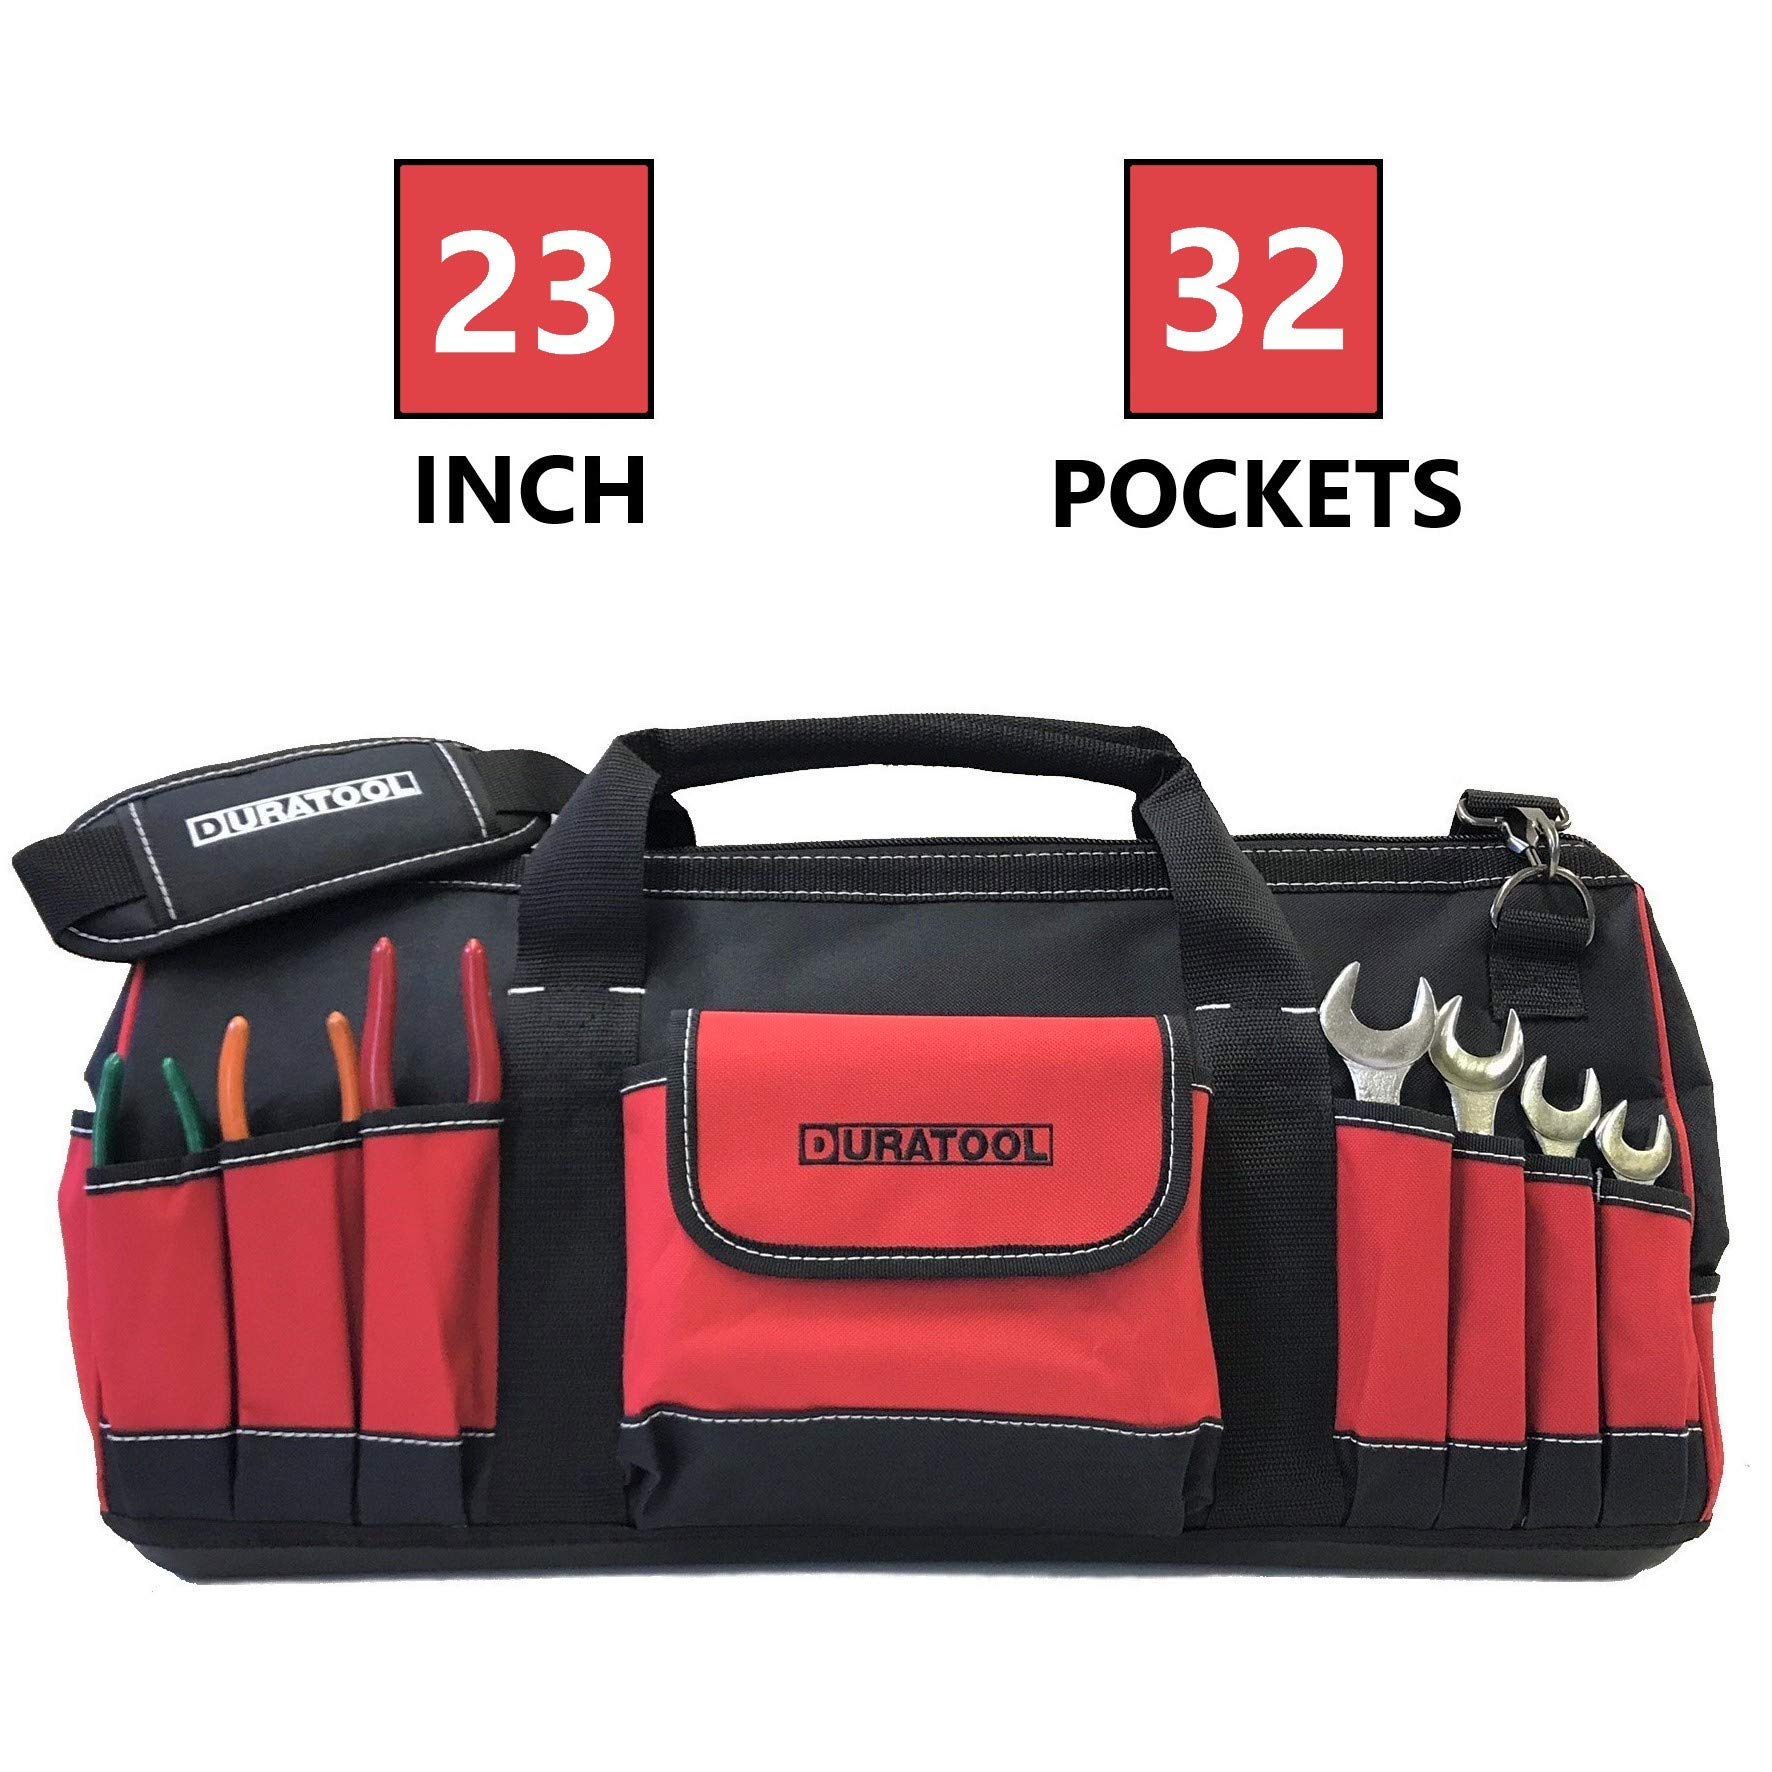 DURATOOL 23-inch Heavy Duty Large Tool Bag with 32 Pockets Adjustable Strap Wide Mouth Waterproof Base Multiple Pouches Tools Bag Tote for Construction Mechanic Electrician Tool Bags for Men and Women